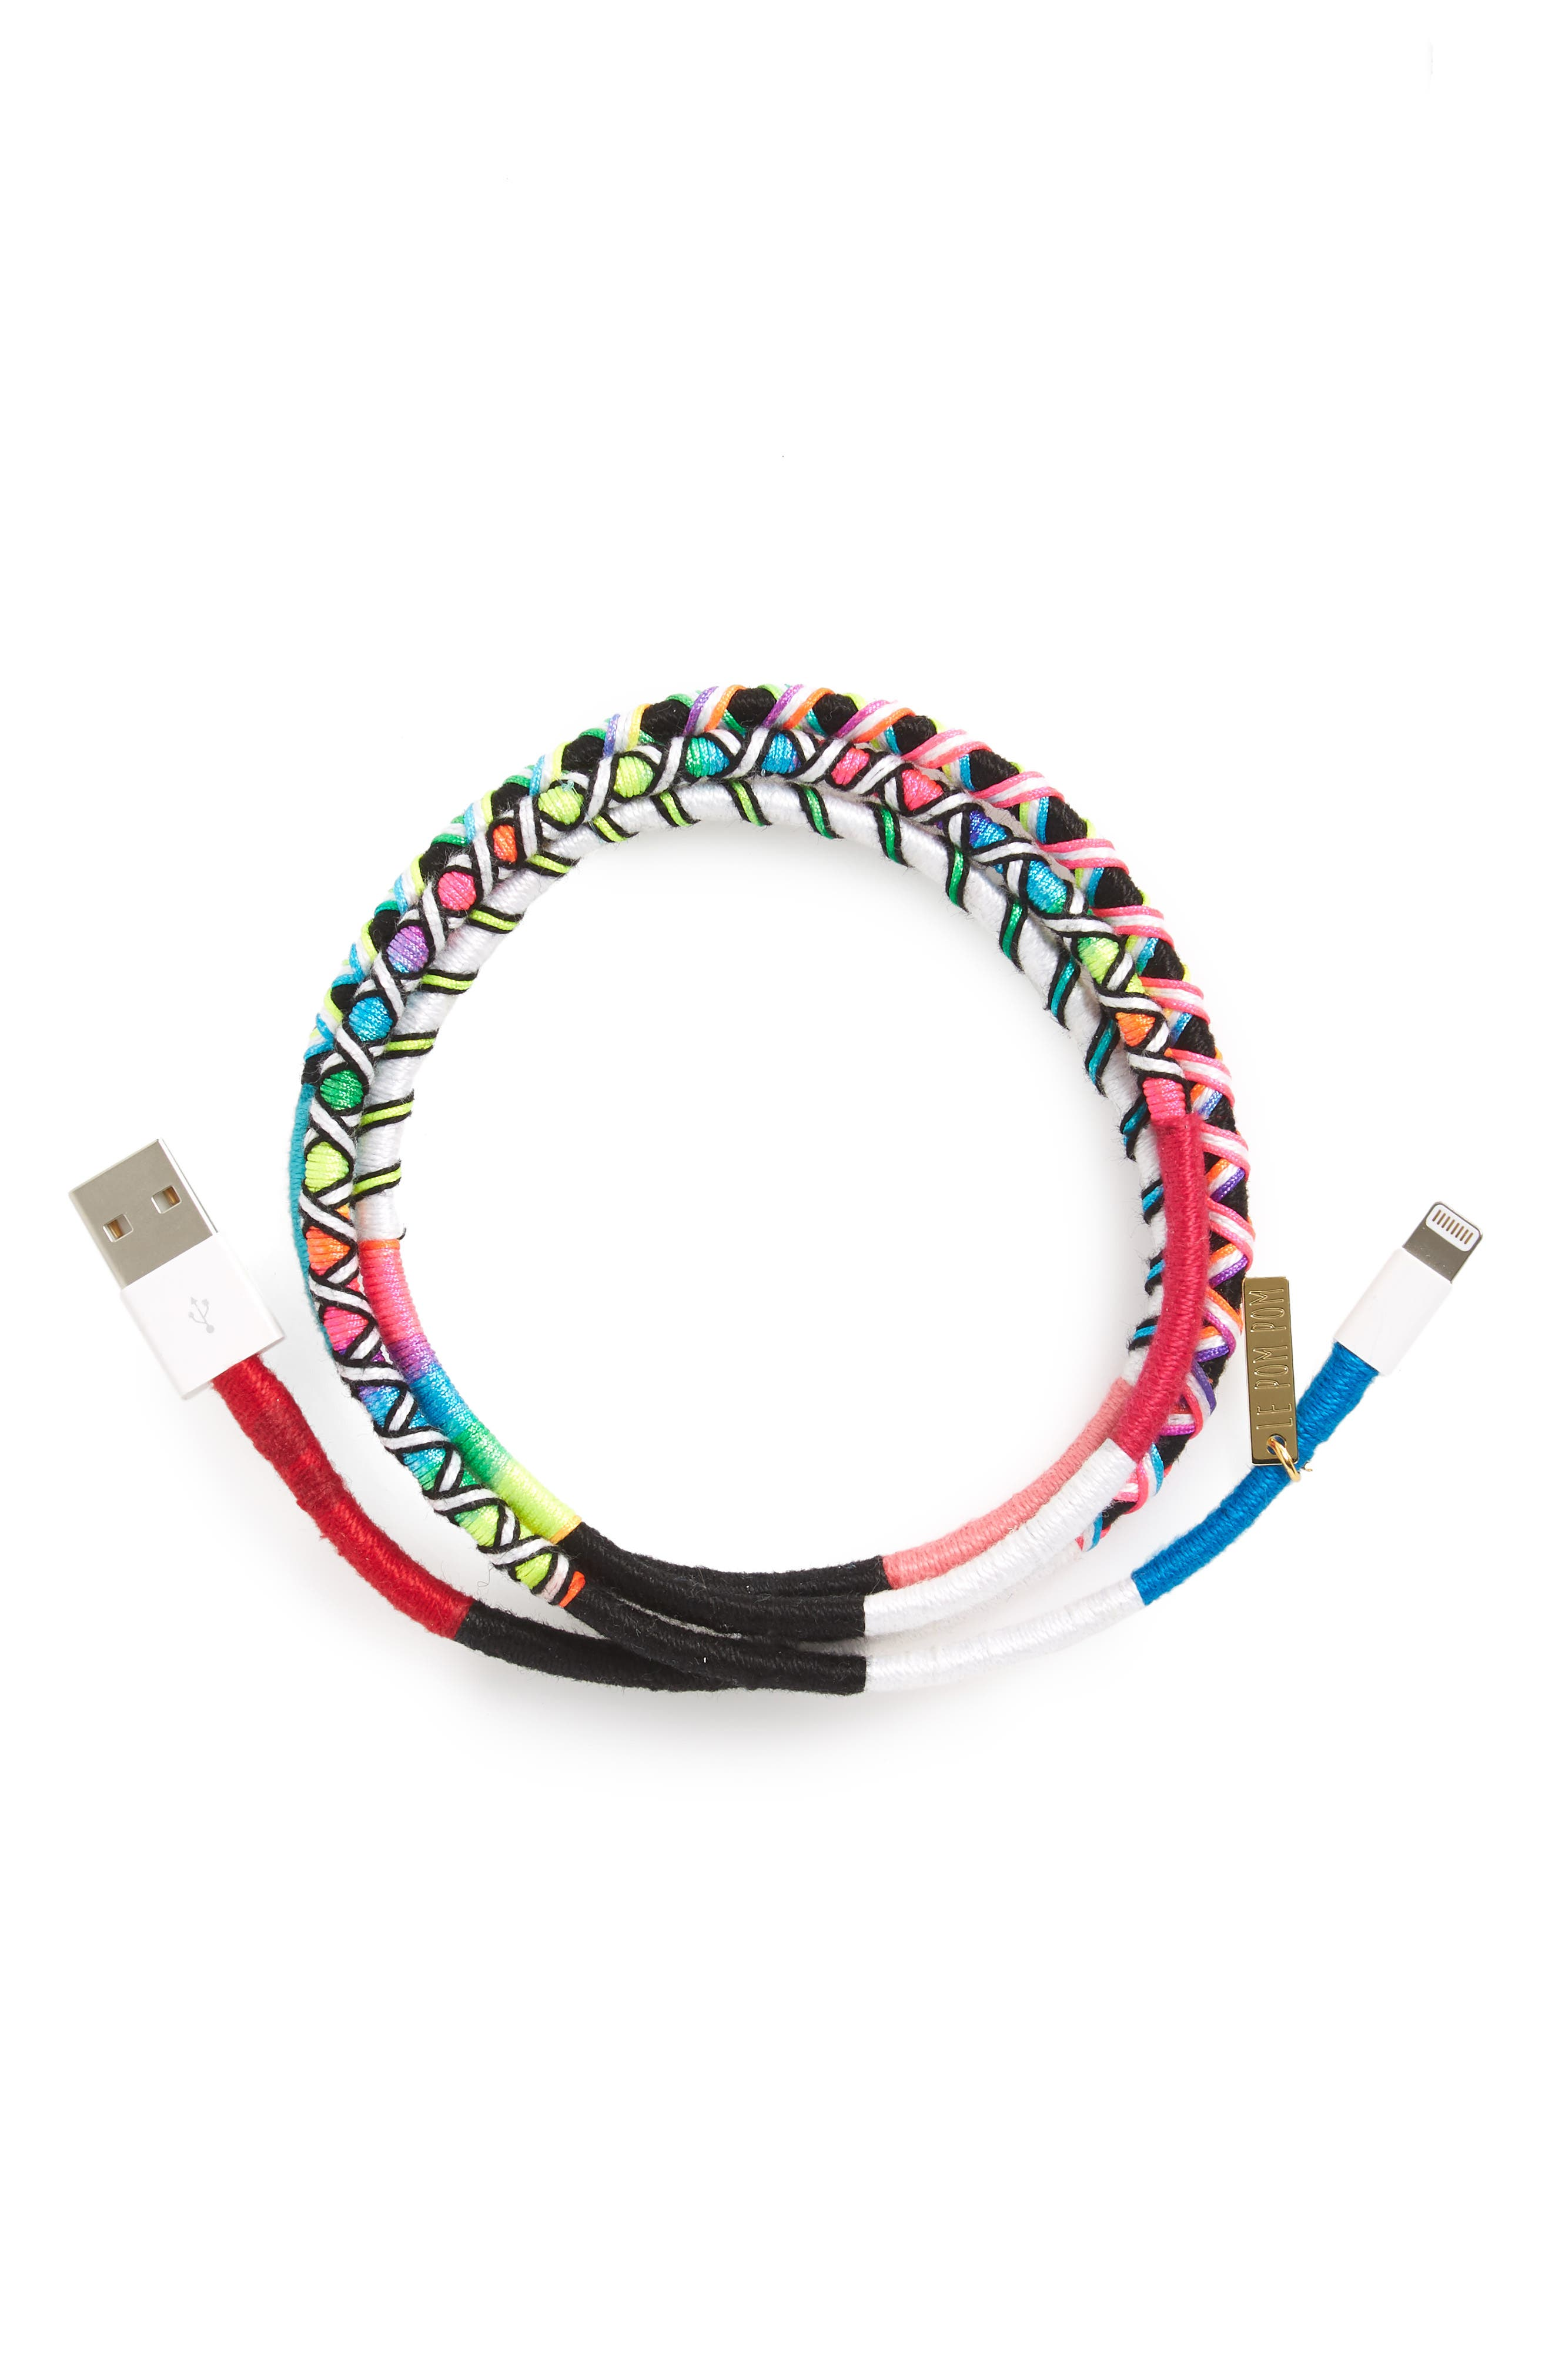 Le Pom Pom Polly Hand-Wrapped iPhone Charging Cord